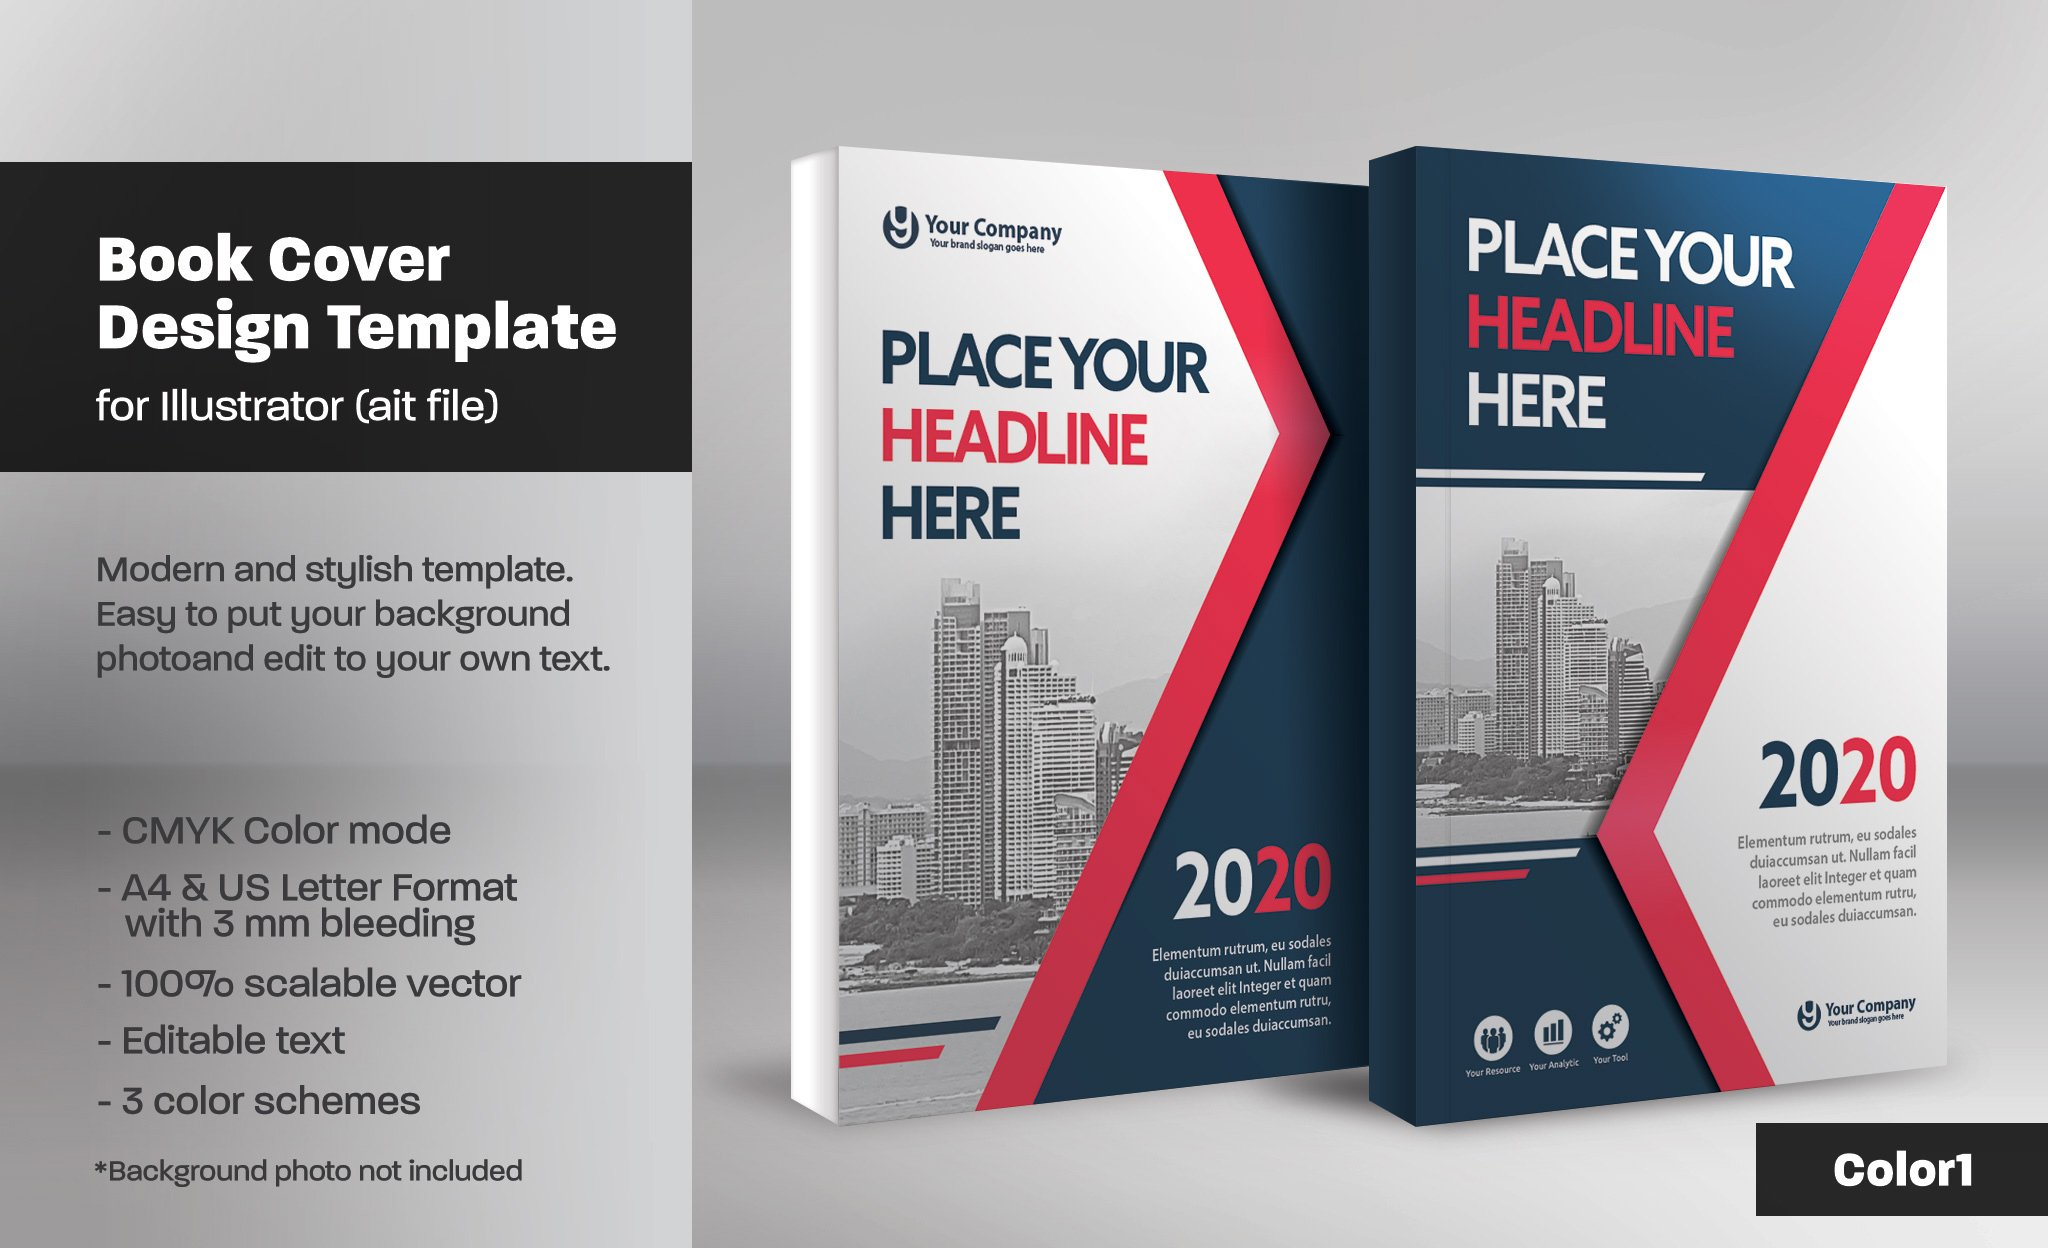 Design A New Book Cover Template ~ Book cover template templates creative market